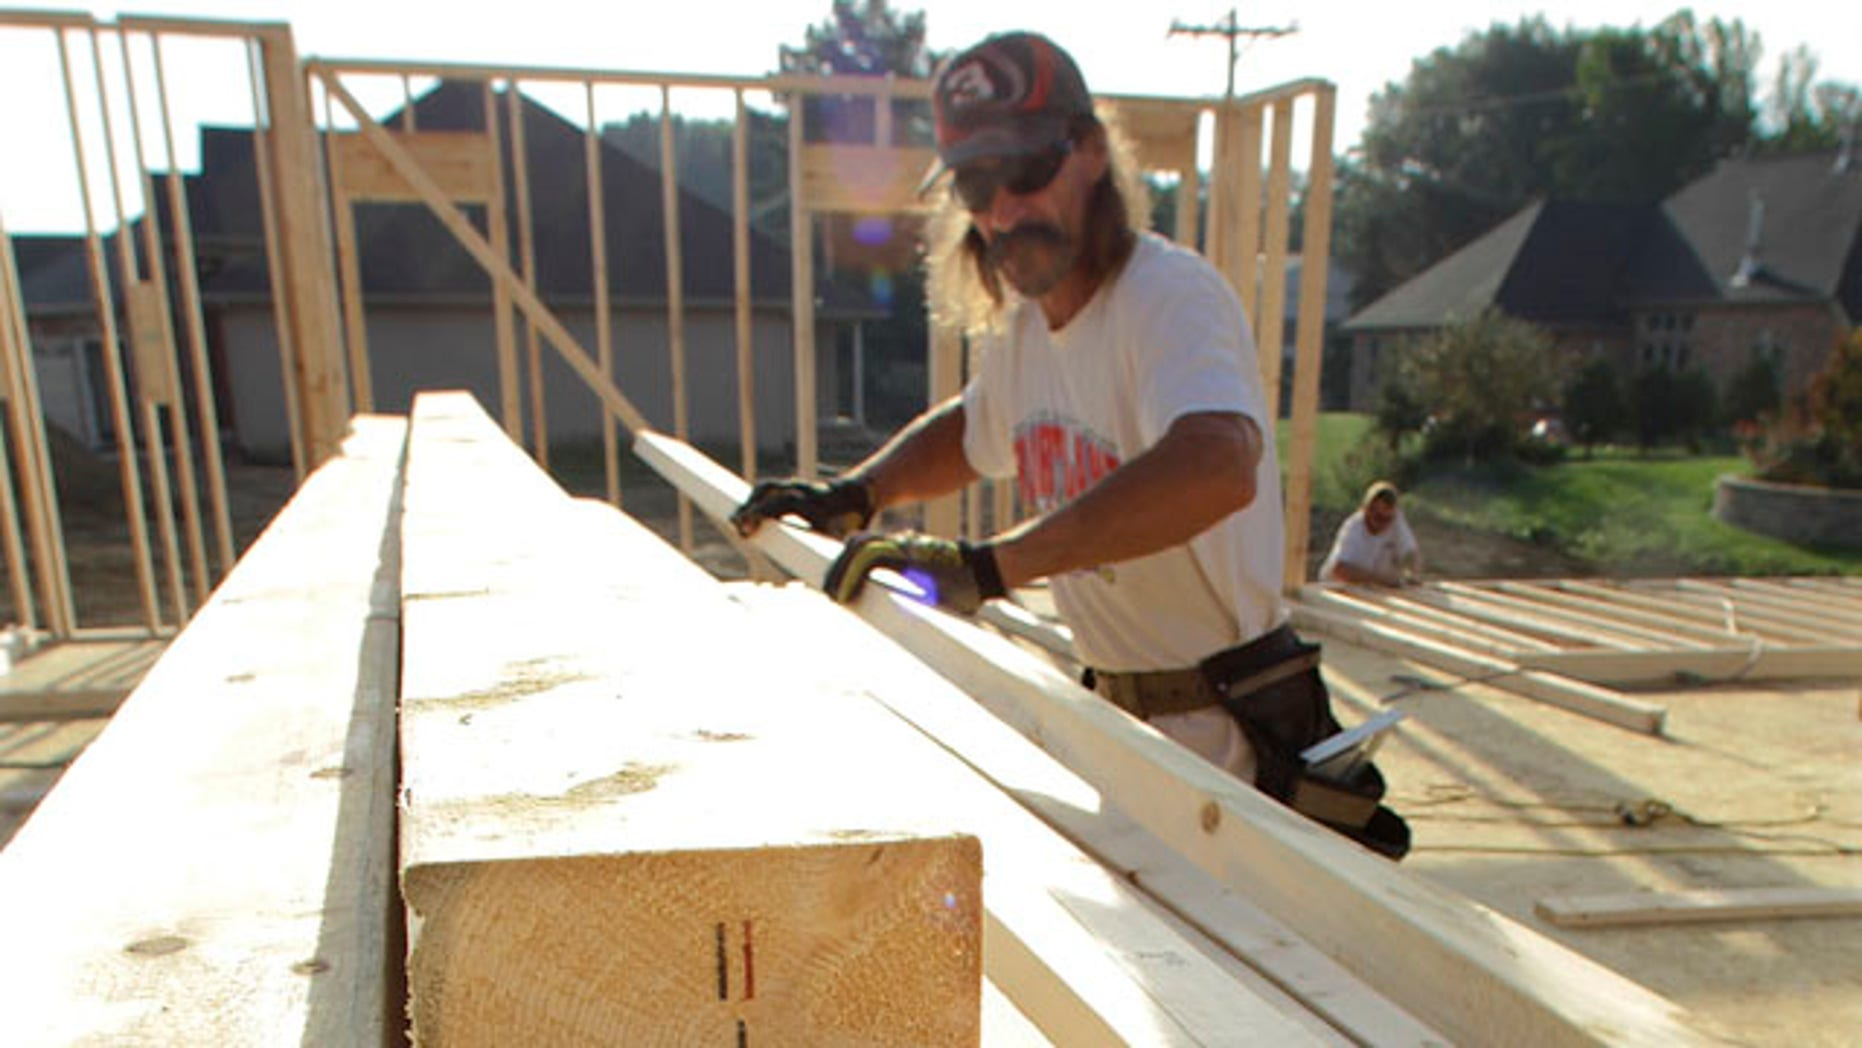 Production of construction dropped in September as high unemployment may have left Americans more reluctant to spend.